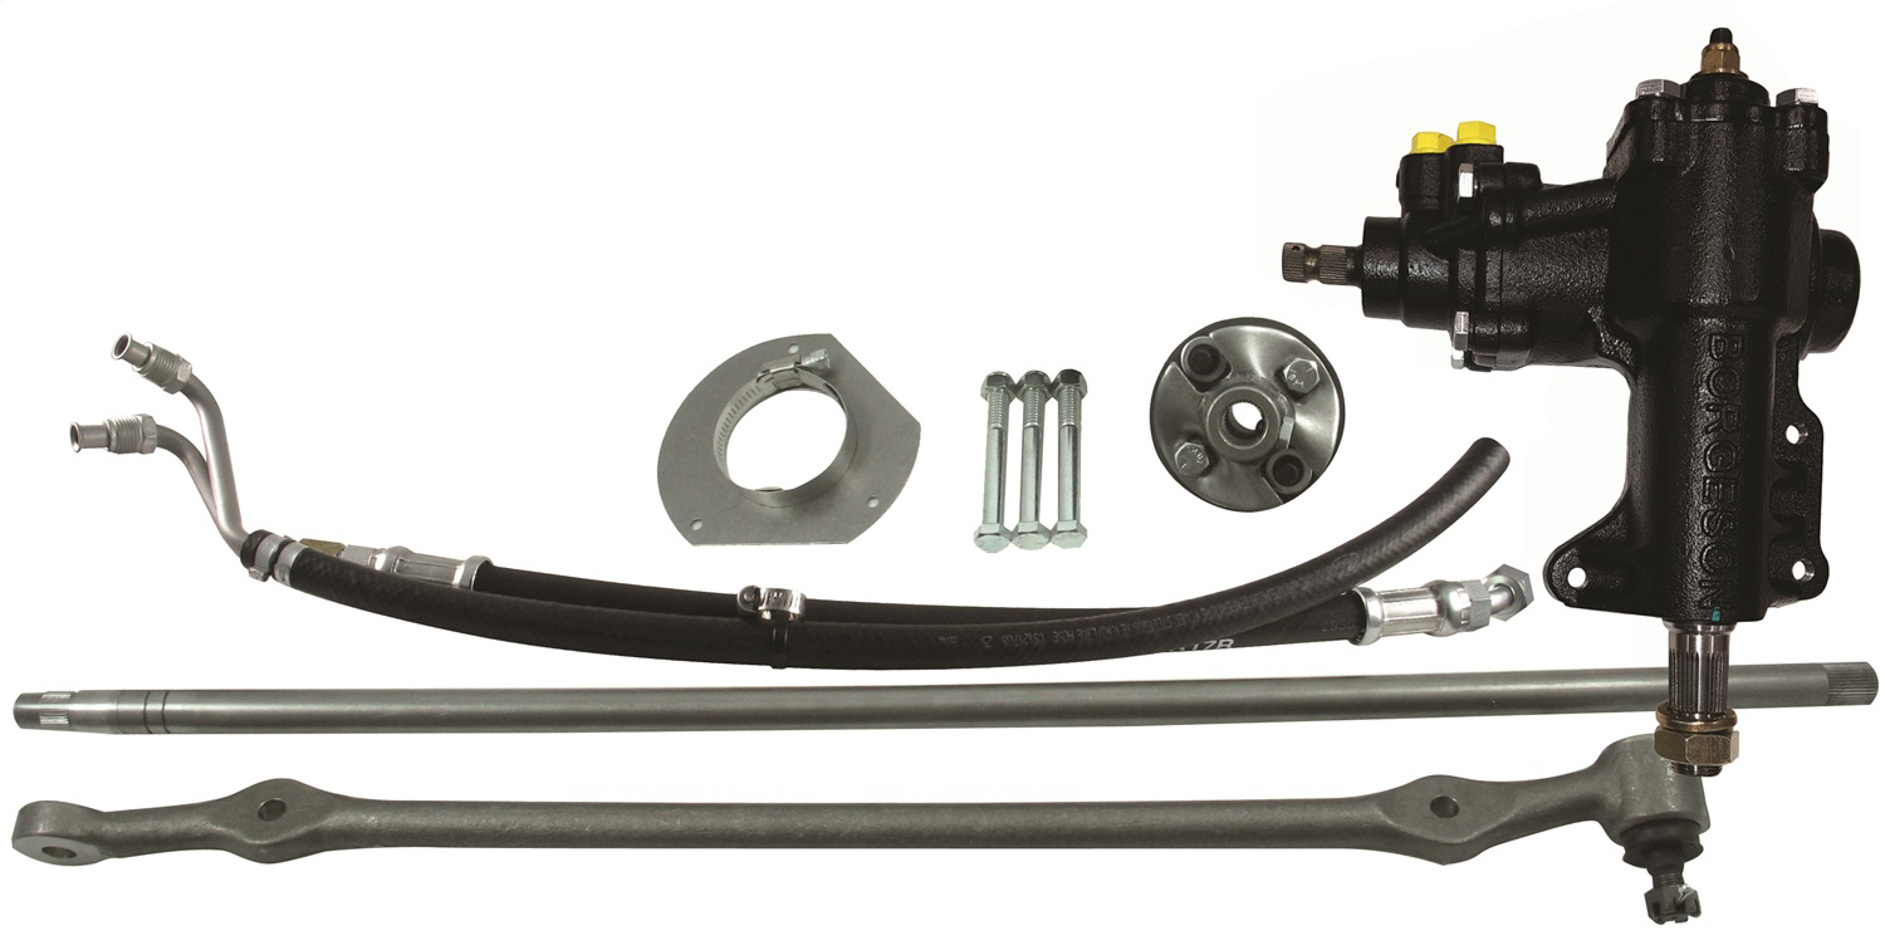 Borgeson 999023 Steering Box, Power, 14 to 1 Ratio, Joints / Lines, Iron, Ford V8, Ford Mustang 1965-66, Kit